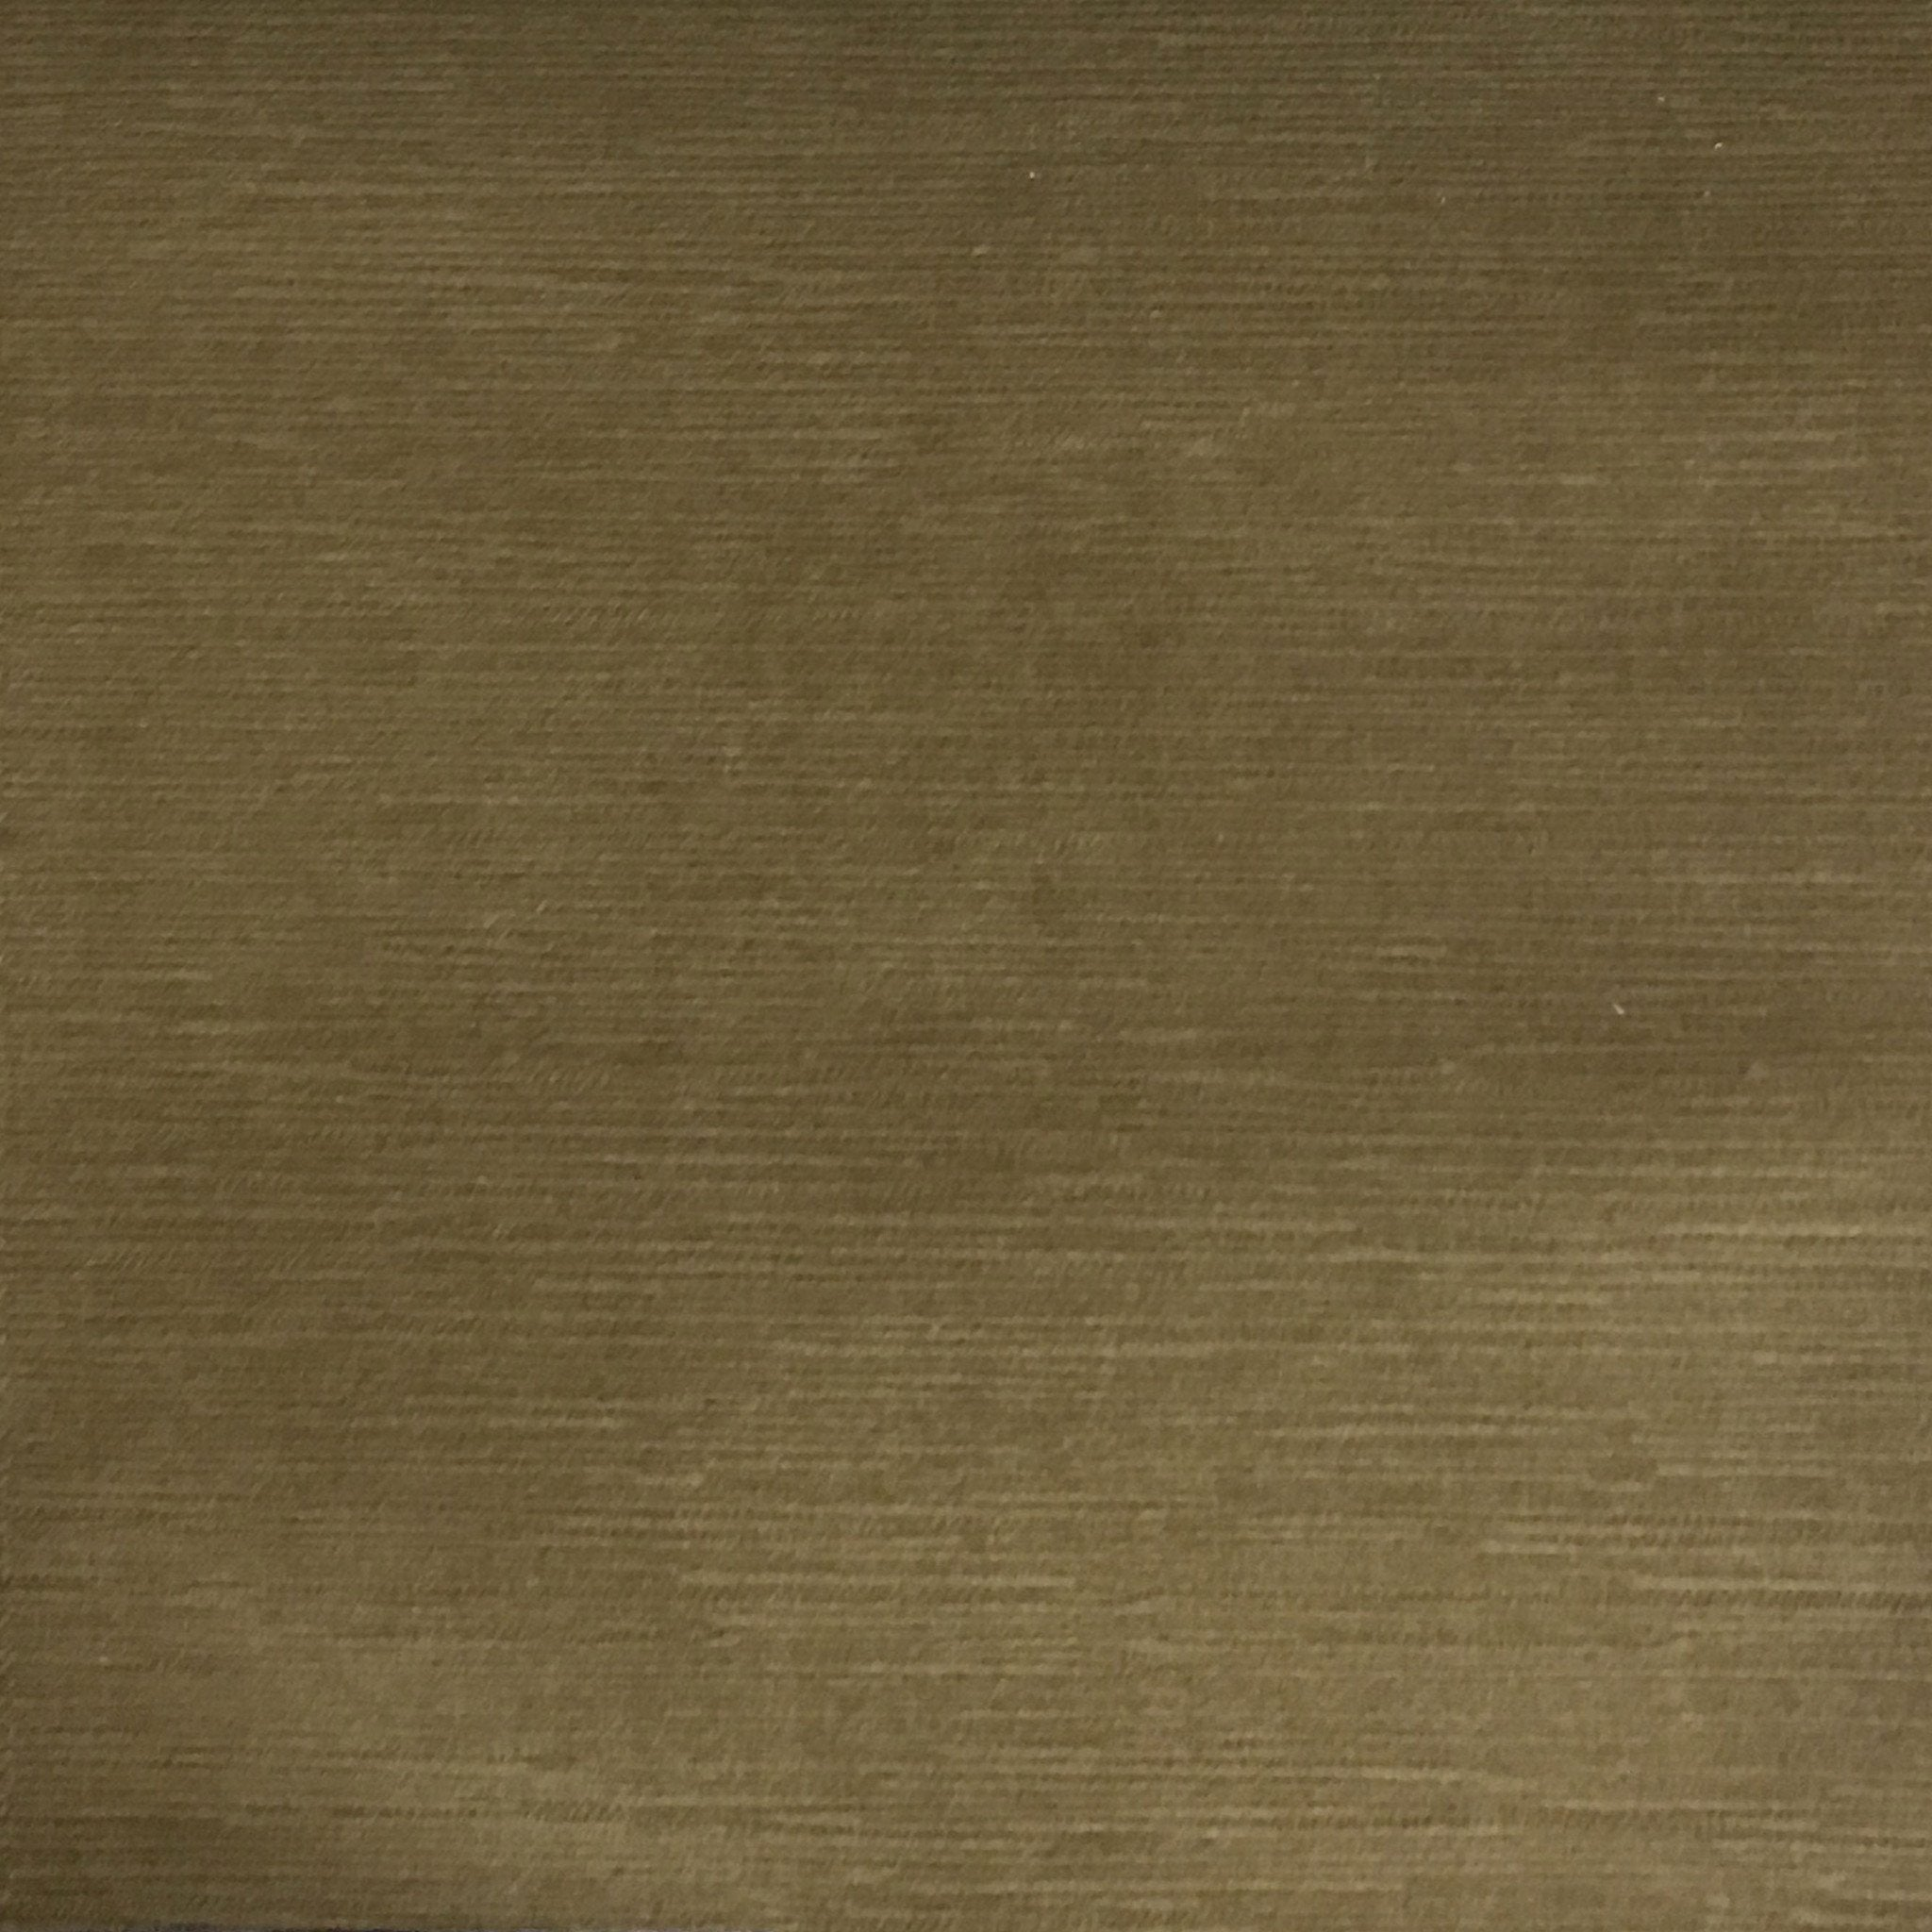 Pond Strie Textured Microfiber Slubbed Velvet Fabric Upholstery Fabr Top Fabric